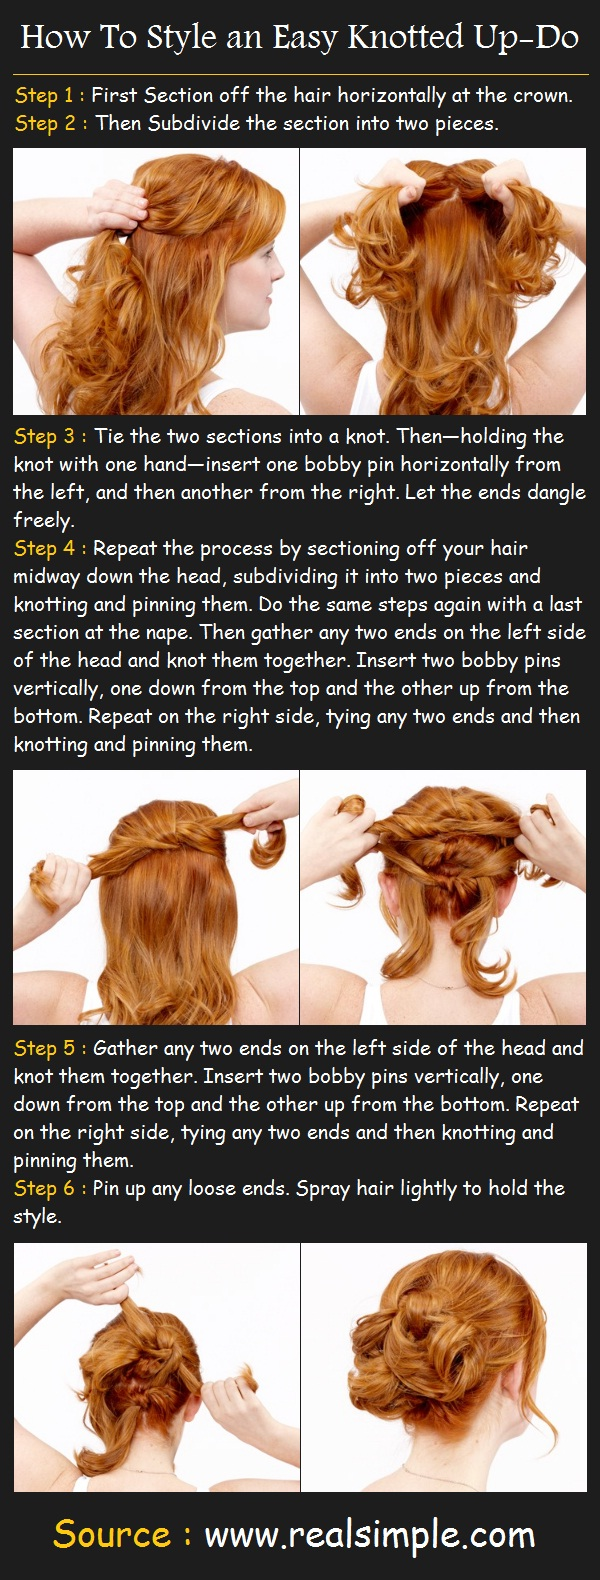 How to style a knotted